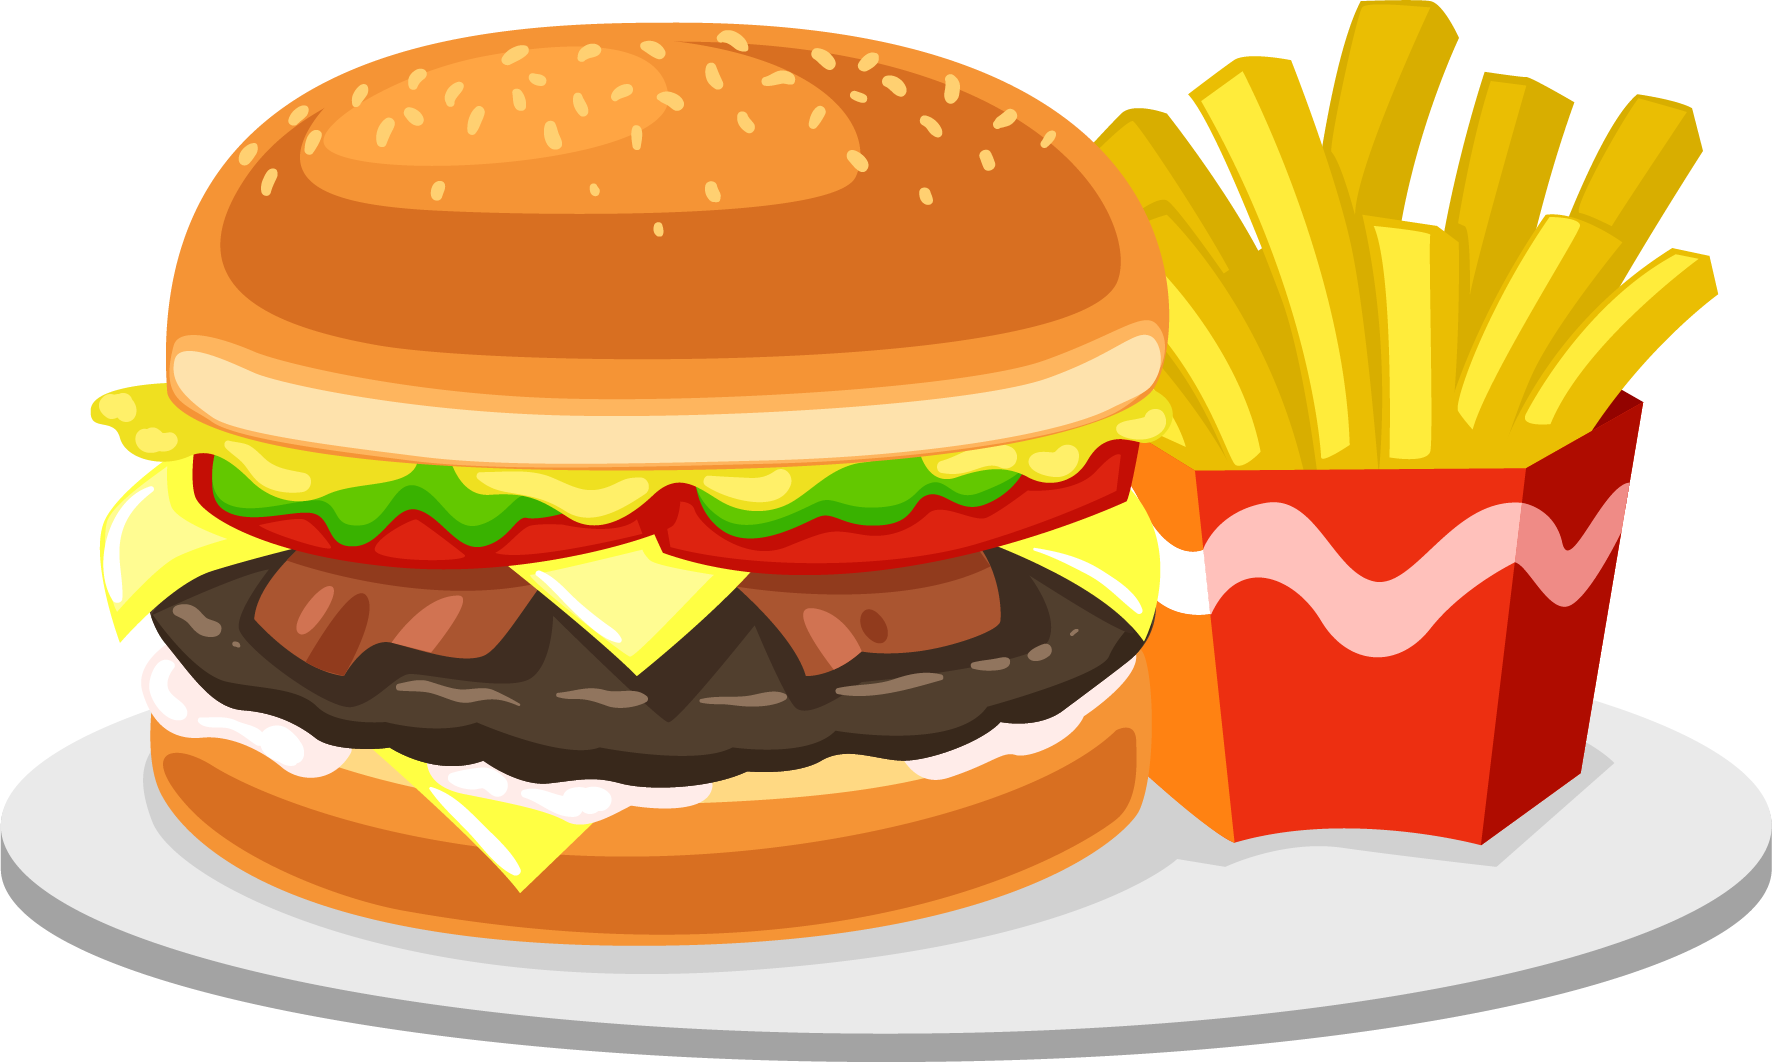 Junk food png. Transparent quality images only